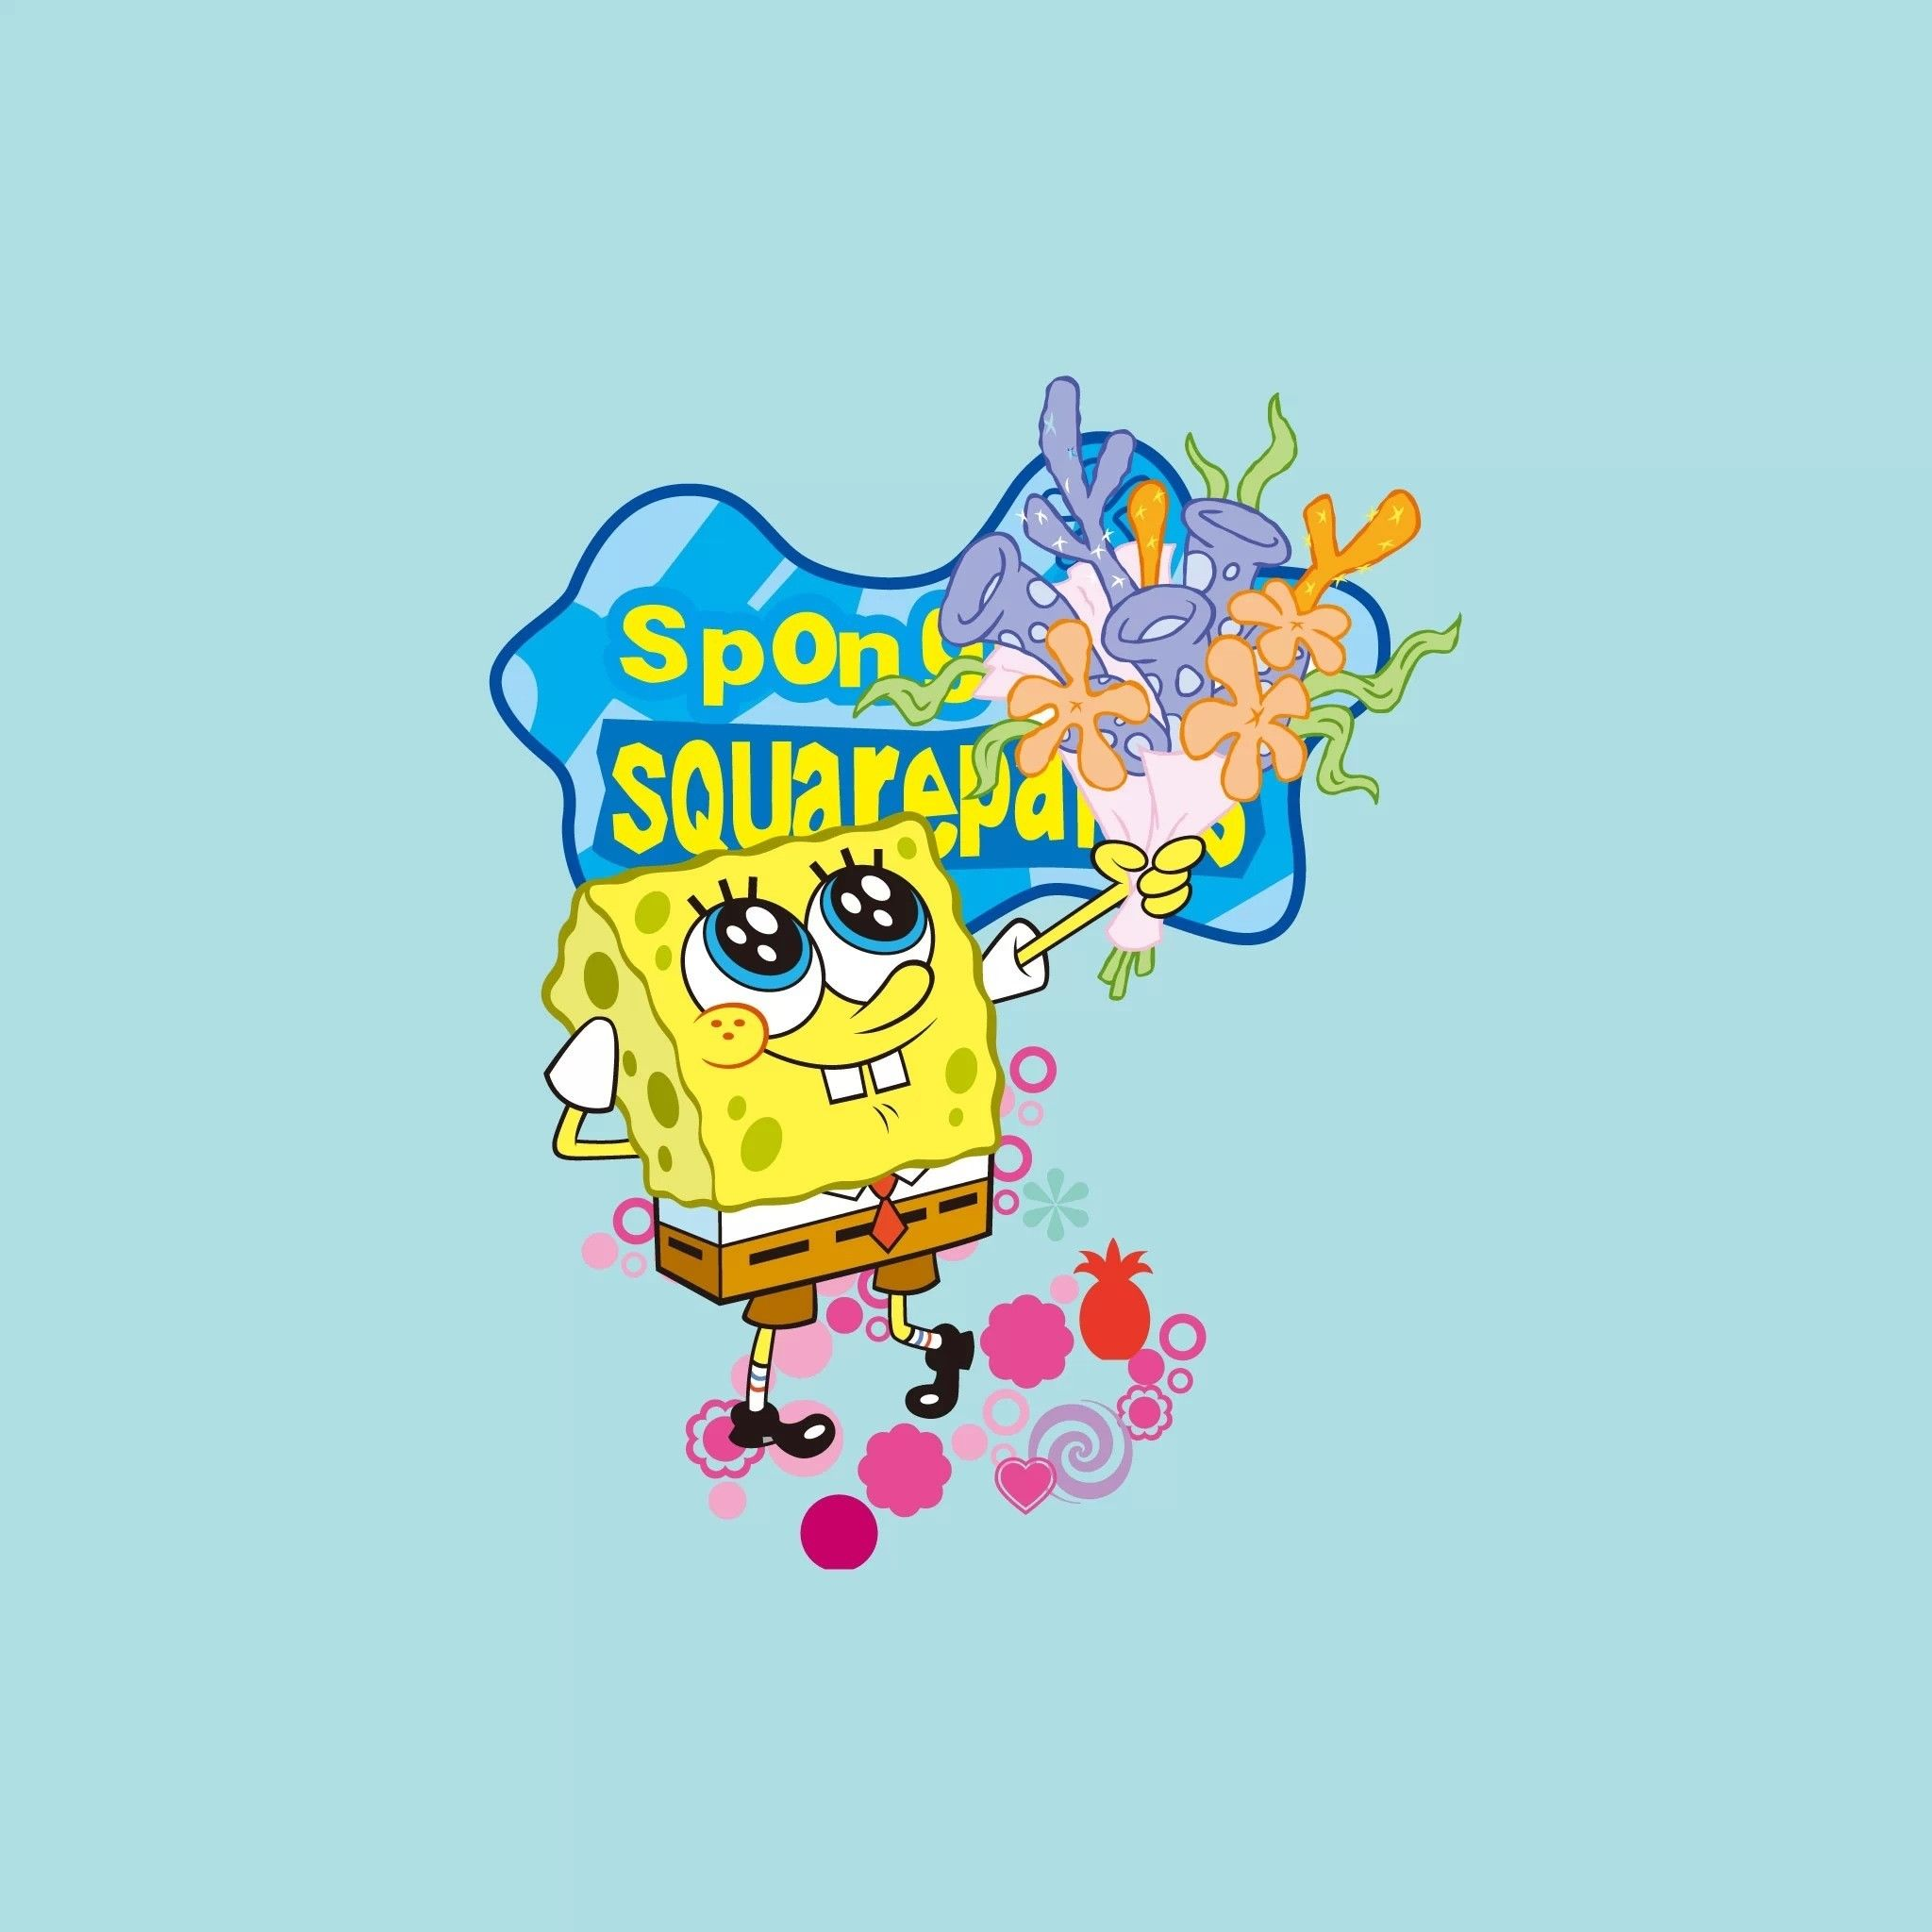 Spongebob Squarepants Flower Clouds - Best Flower 2017